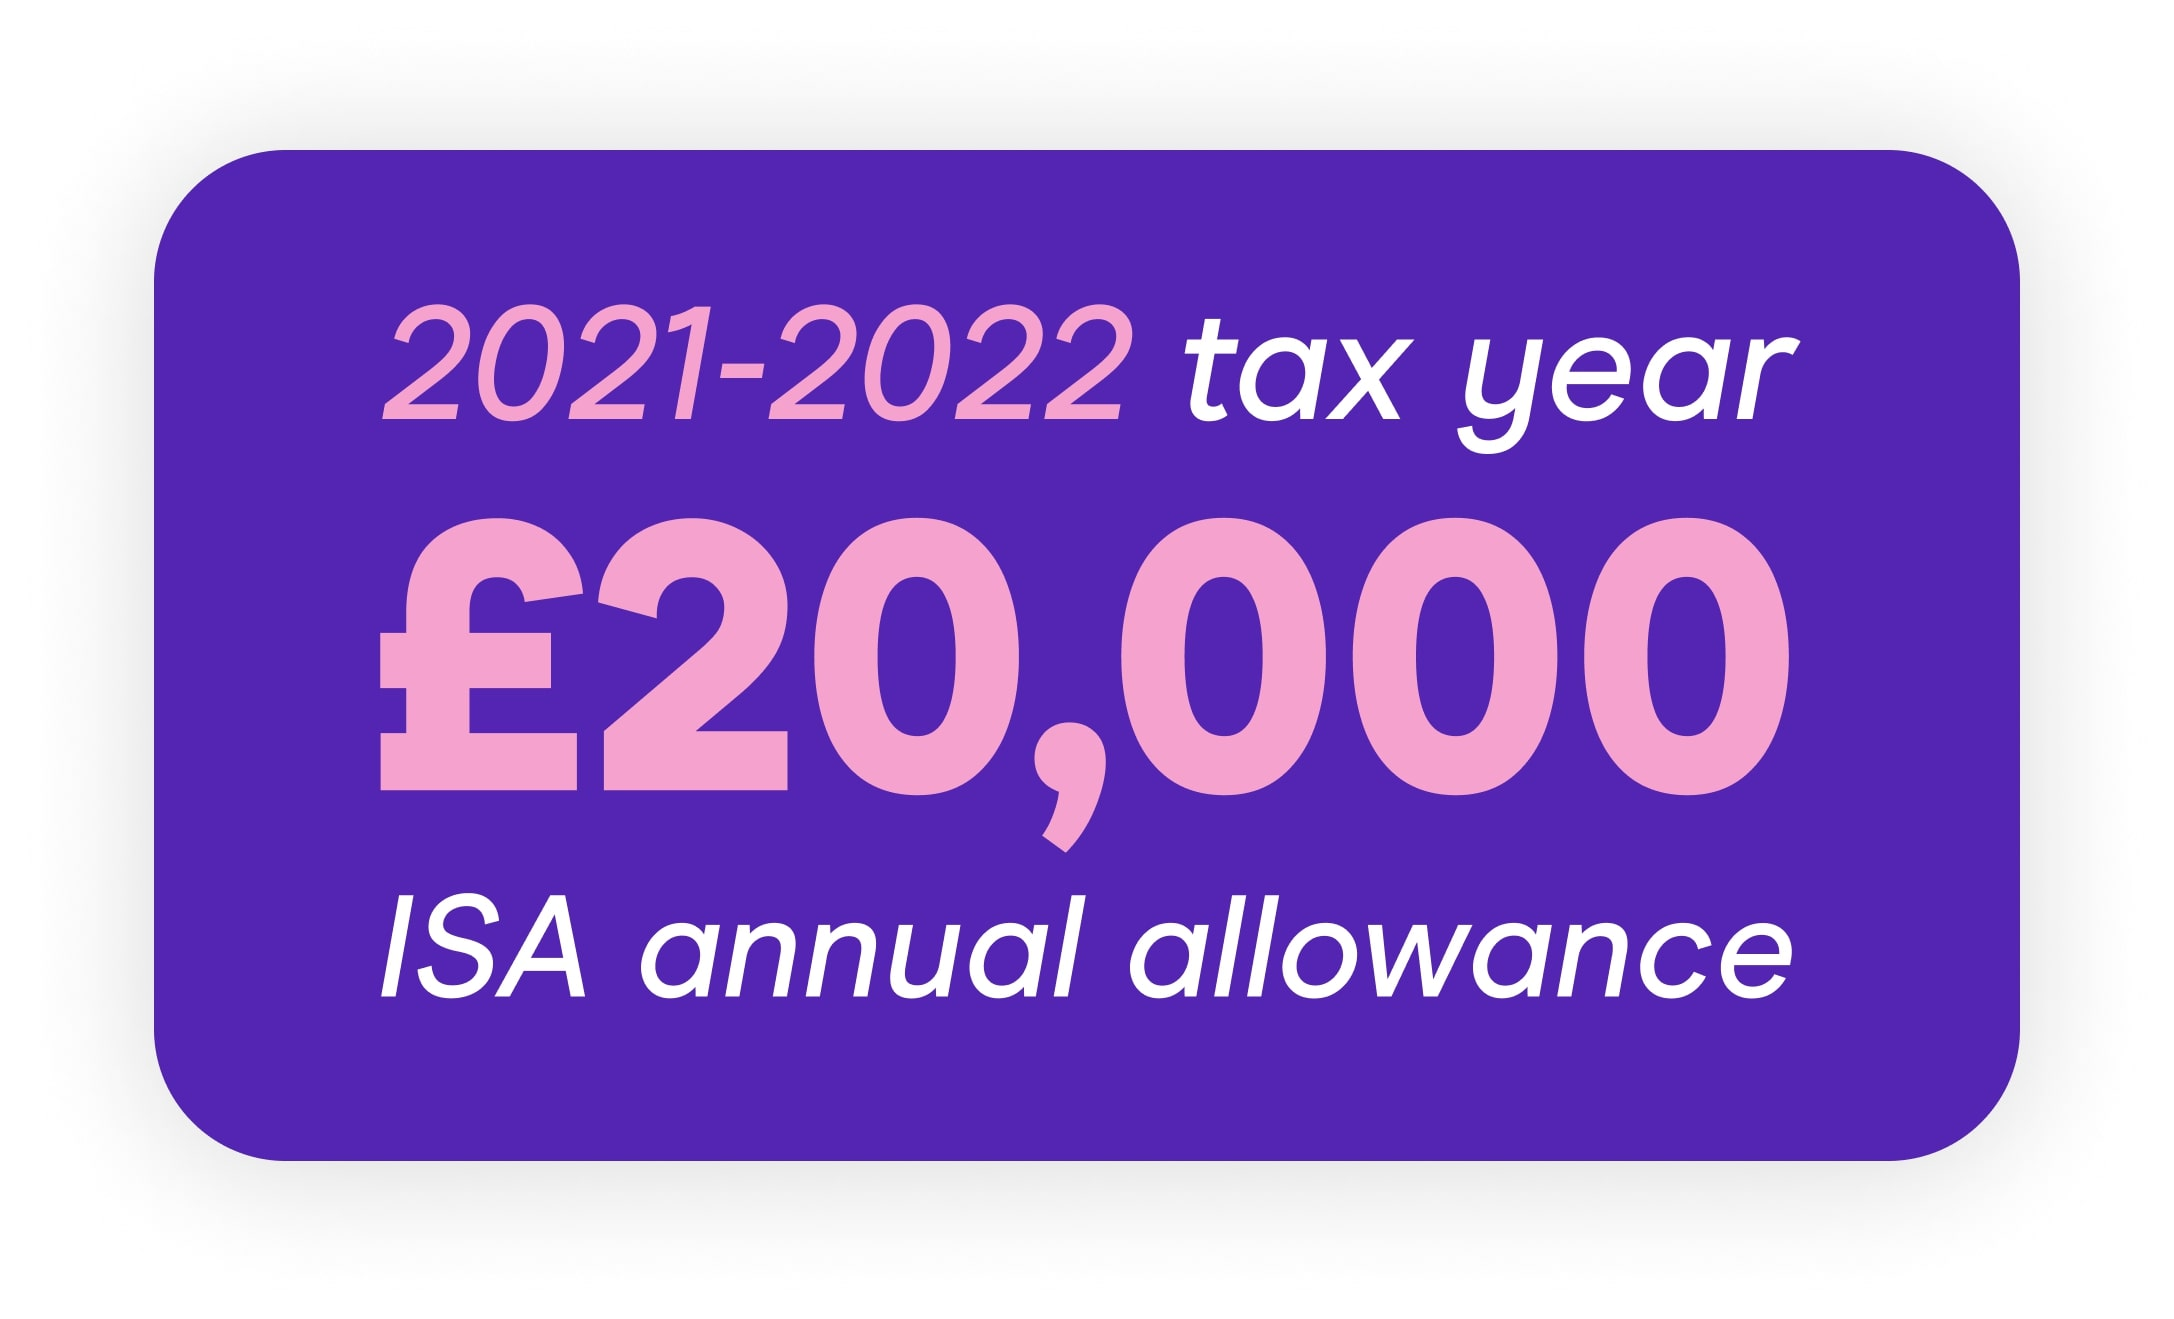 Annual ISA allowance for the 2021/22 tax year